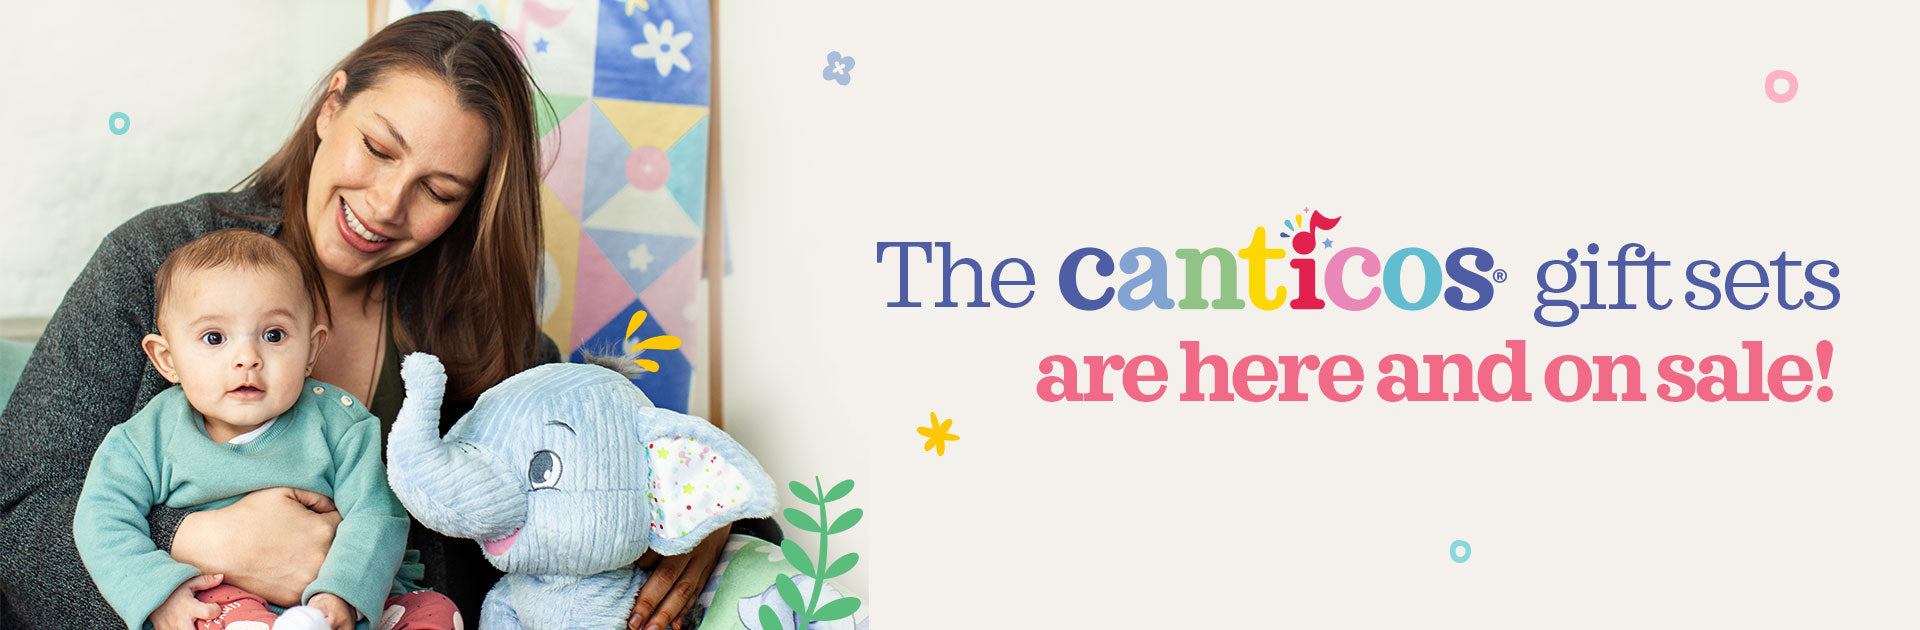 Canticos gift sets